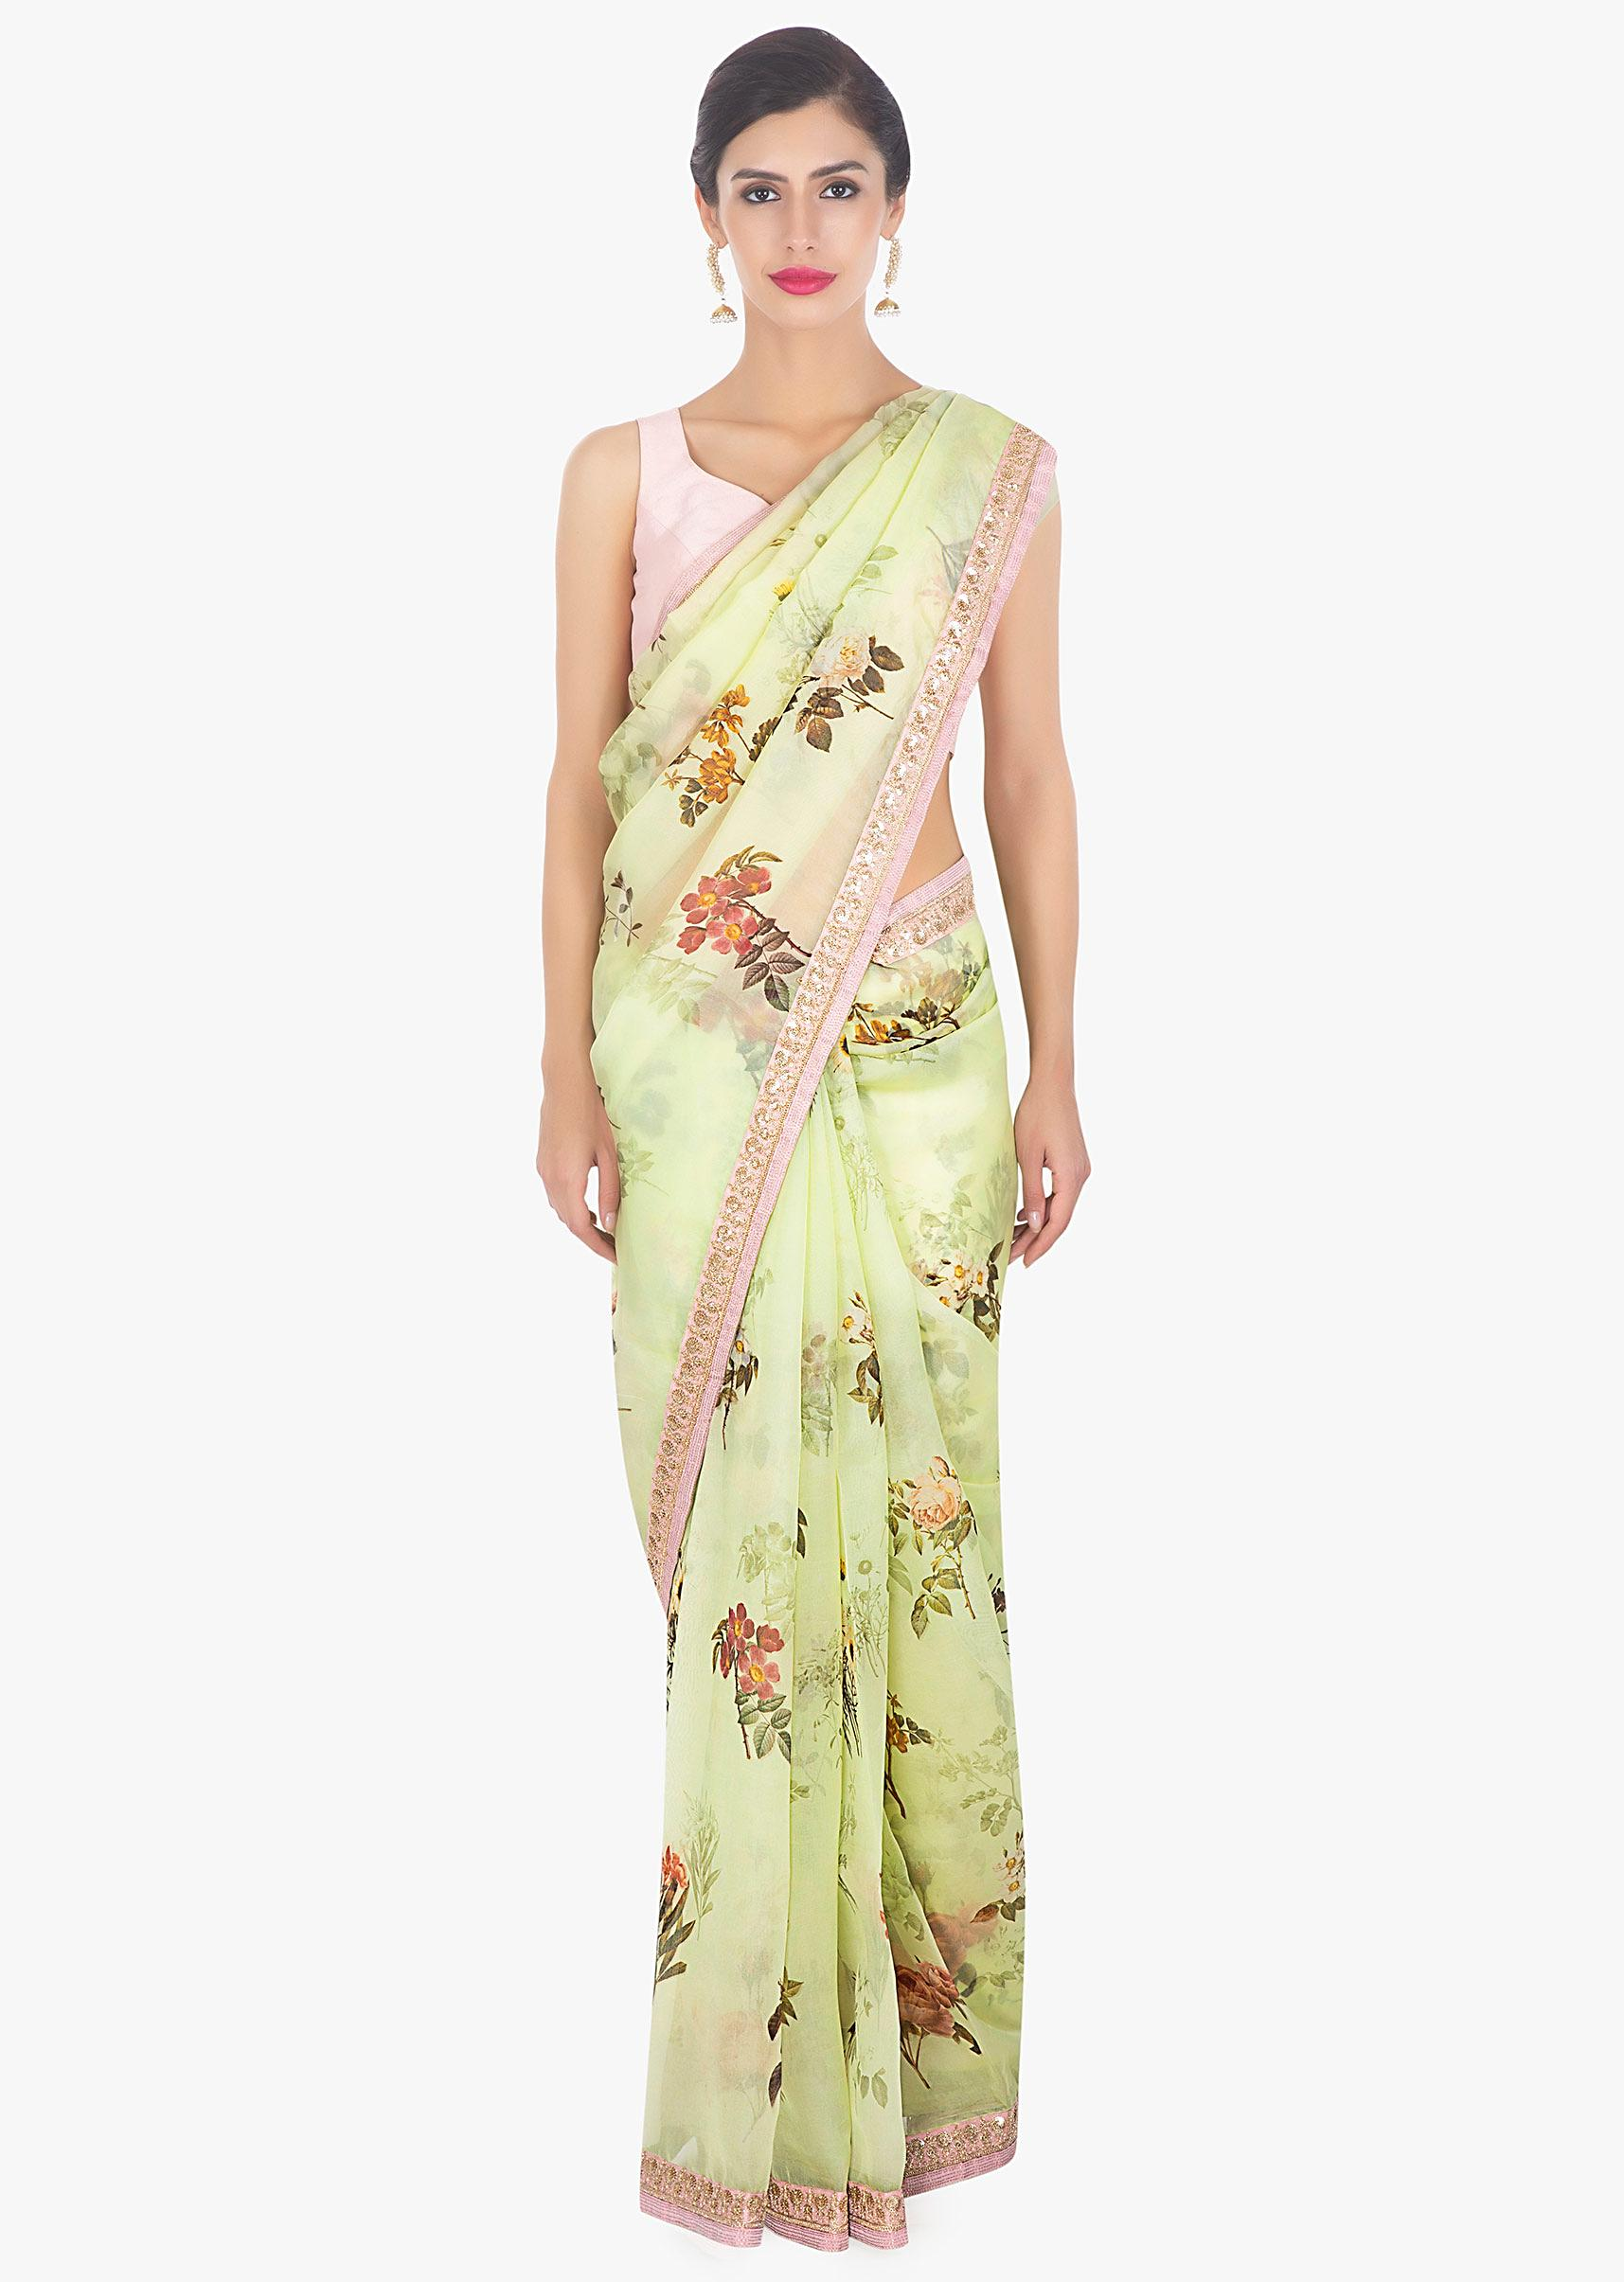 38e4eea0a3 Digital floral printed organza green saree only on Kalki